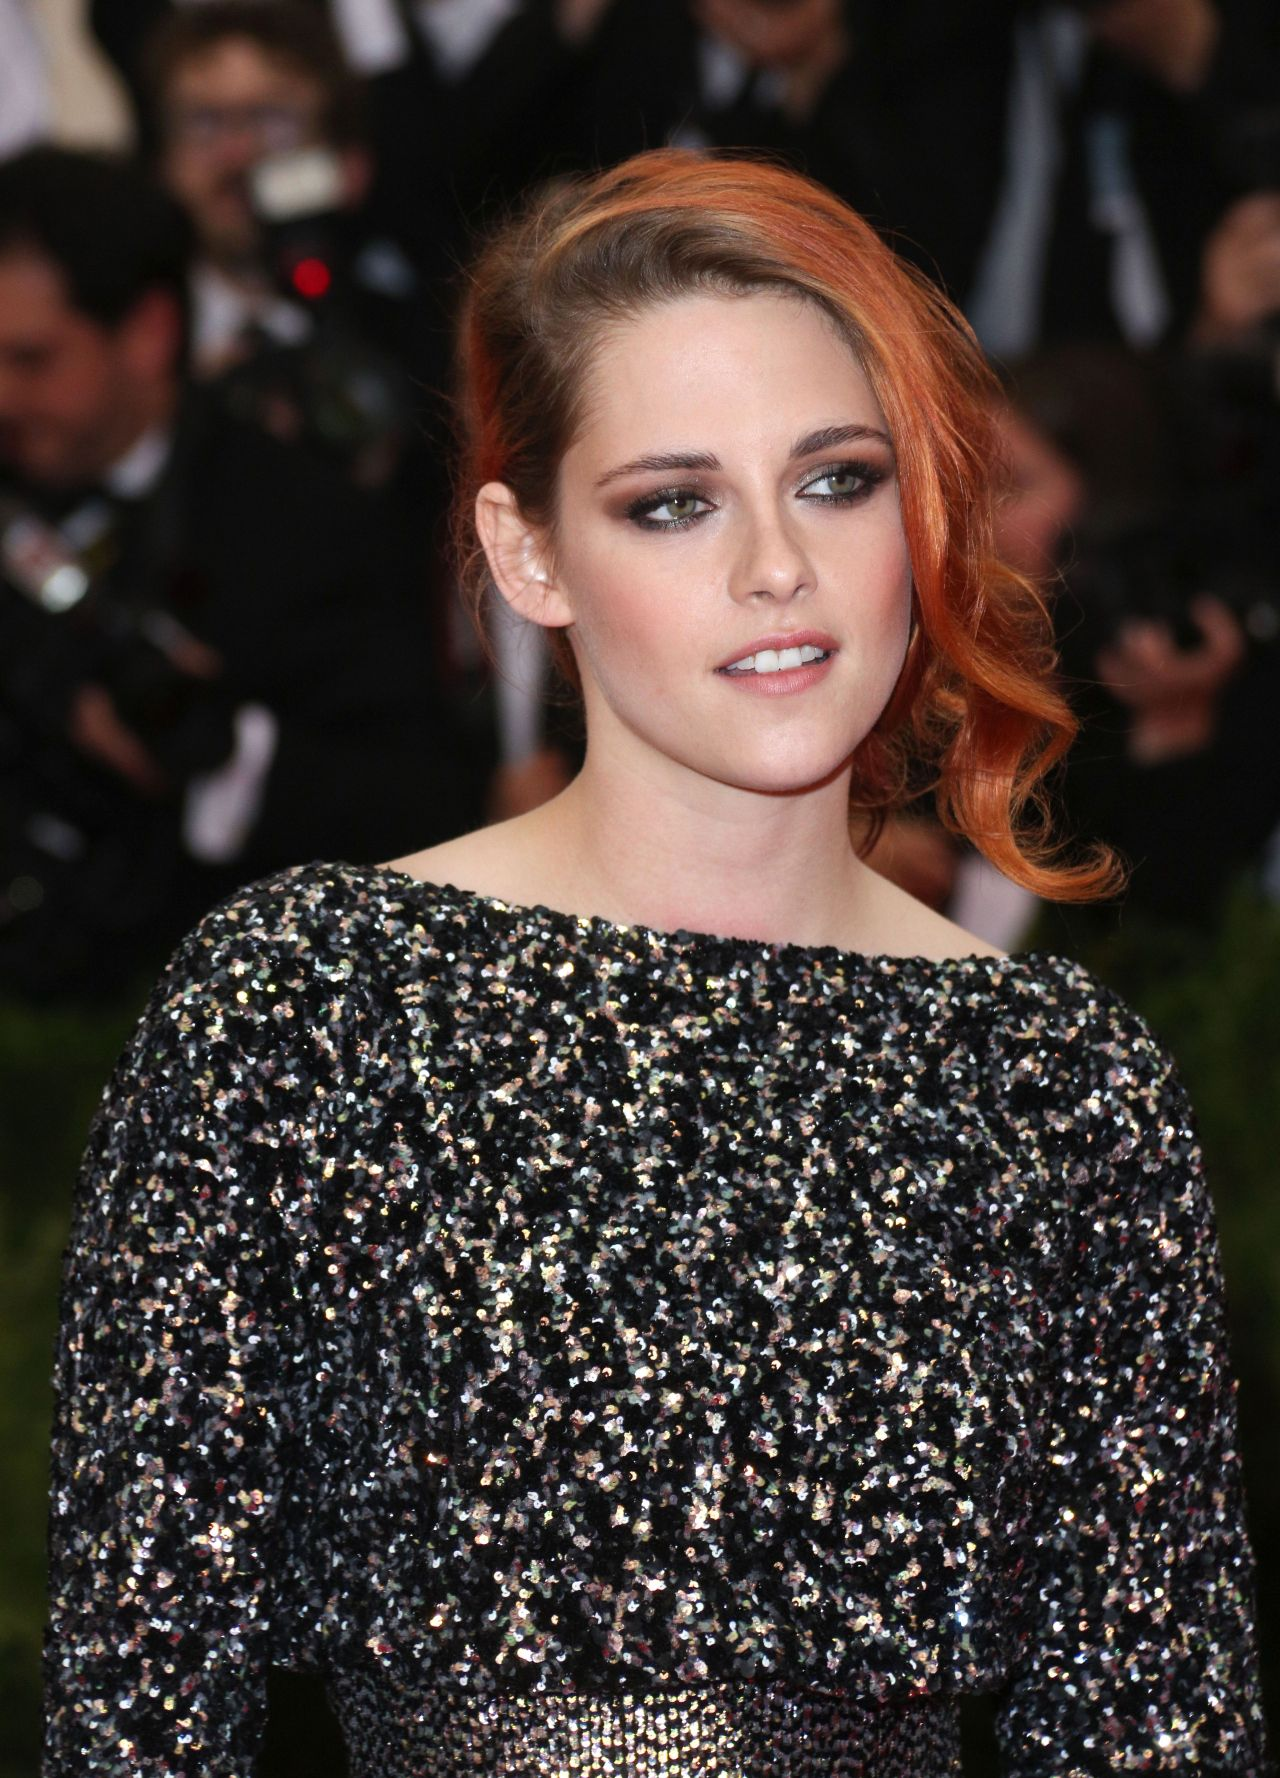 Kristen Stewart in Chanel 2014 Couture Dress – 2014 Met Costume Institute Gala